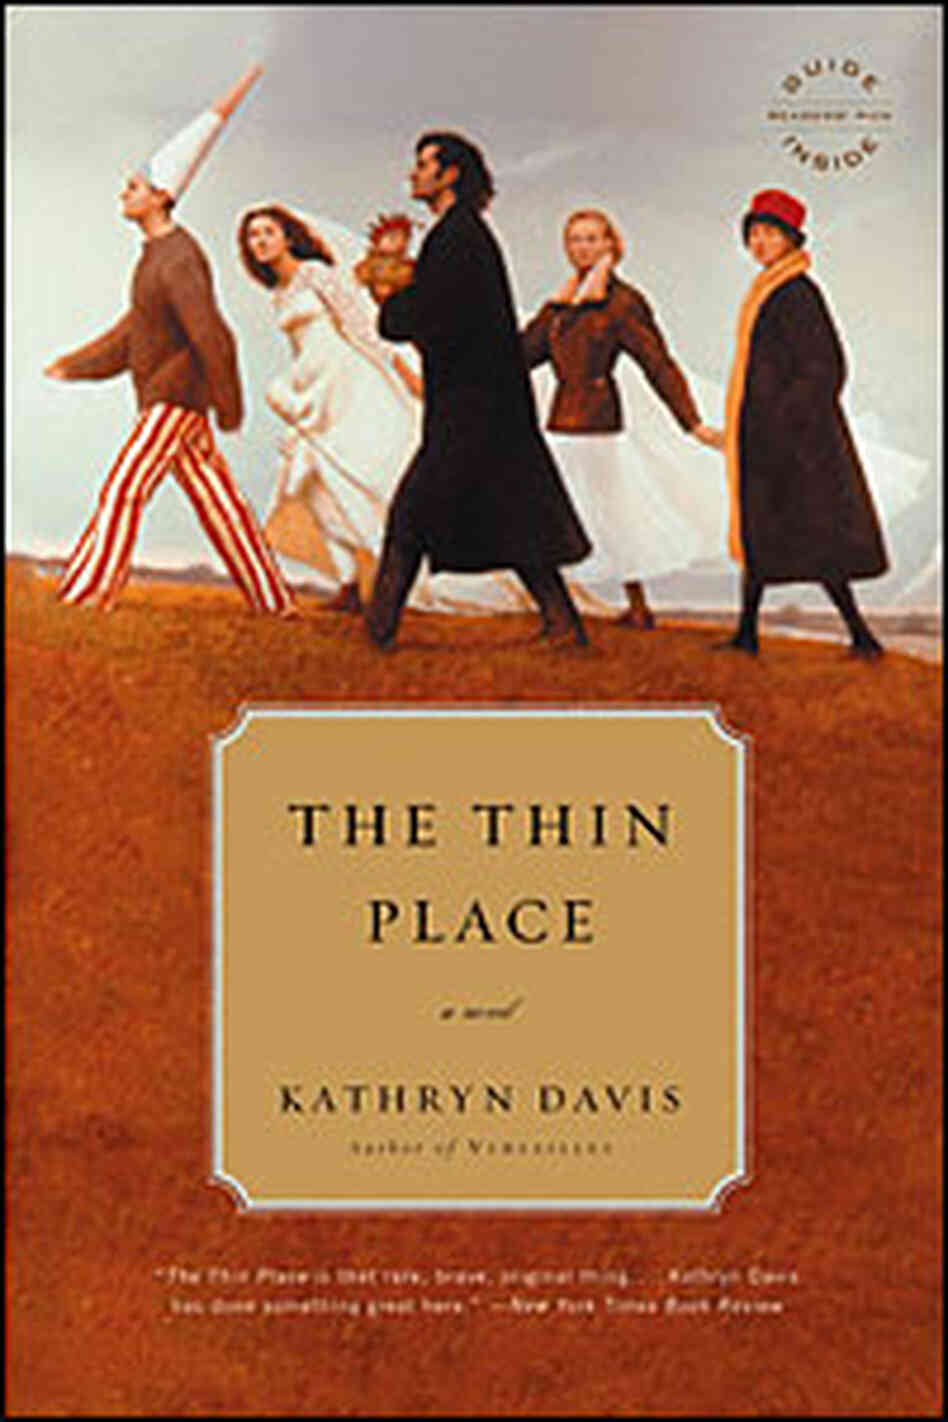 Kathryn Davis' 'The Thin Place'